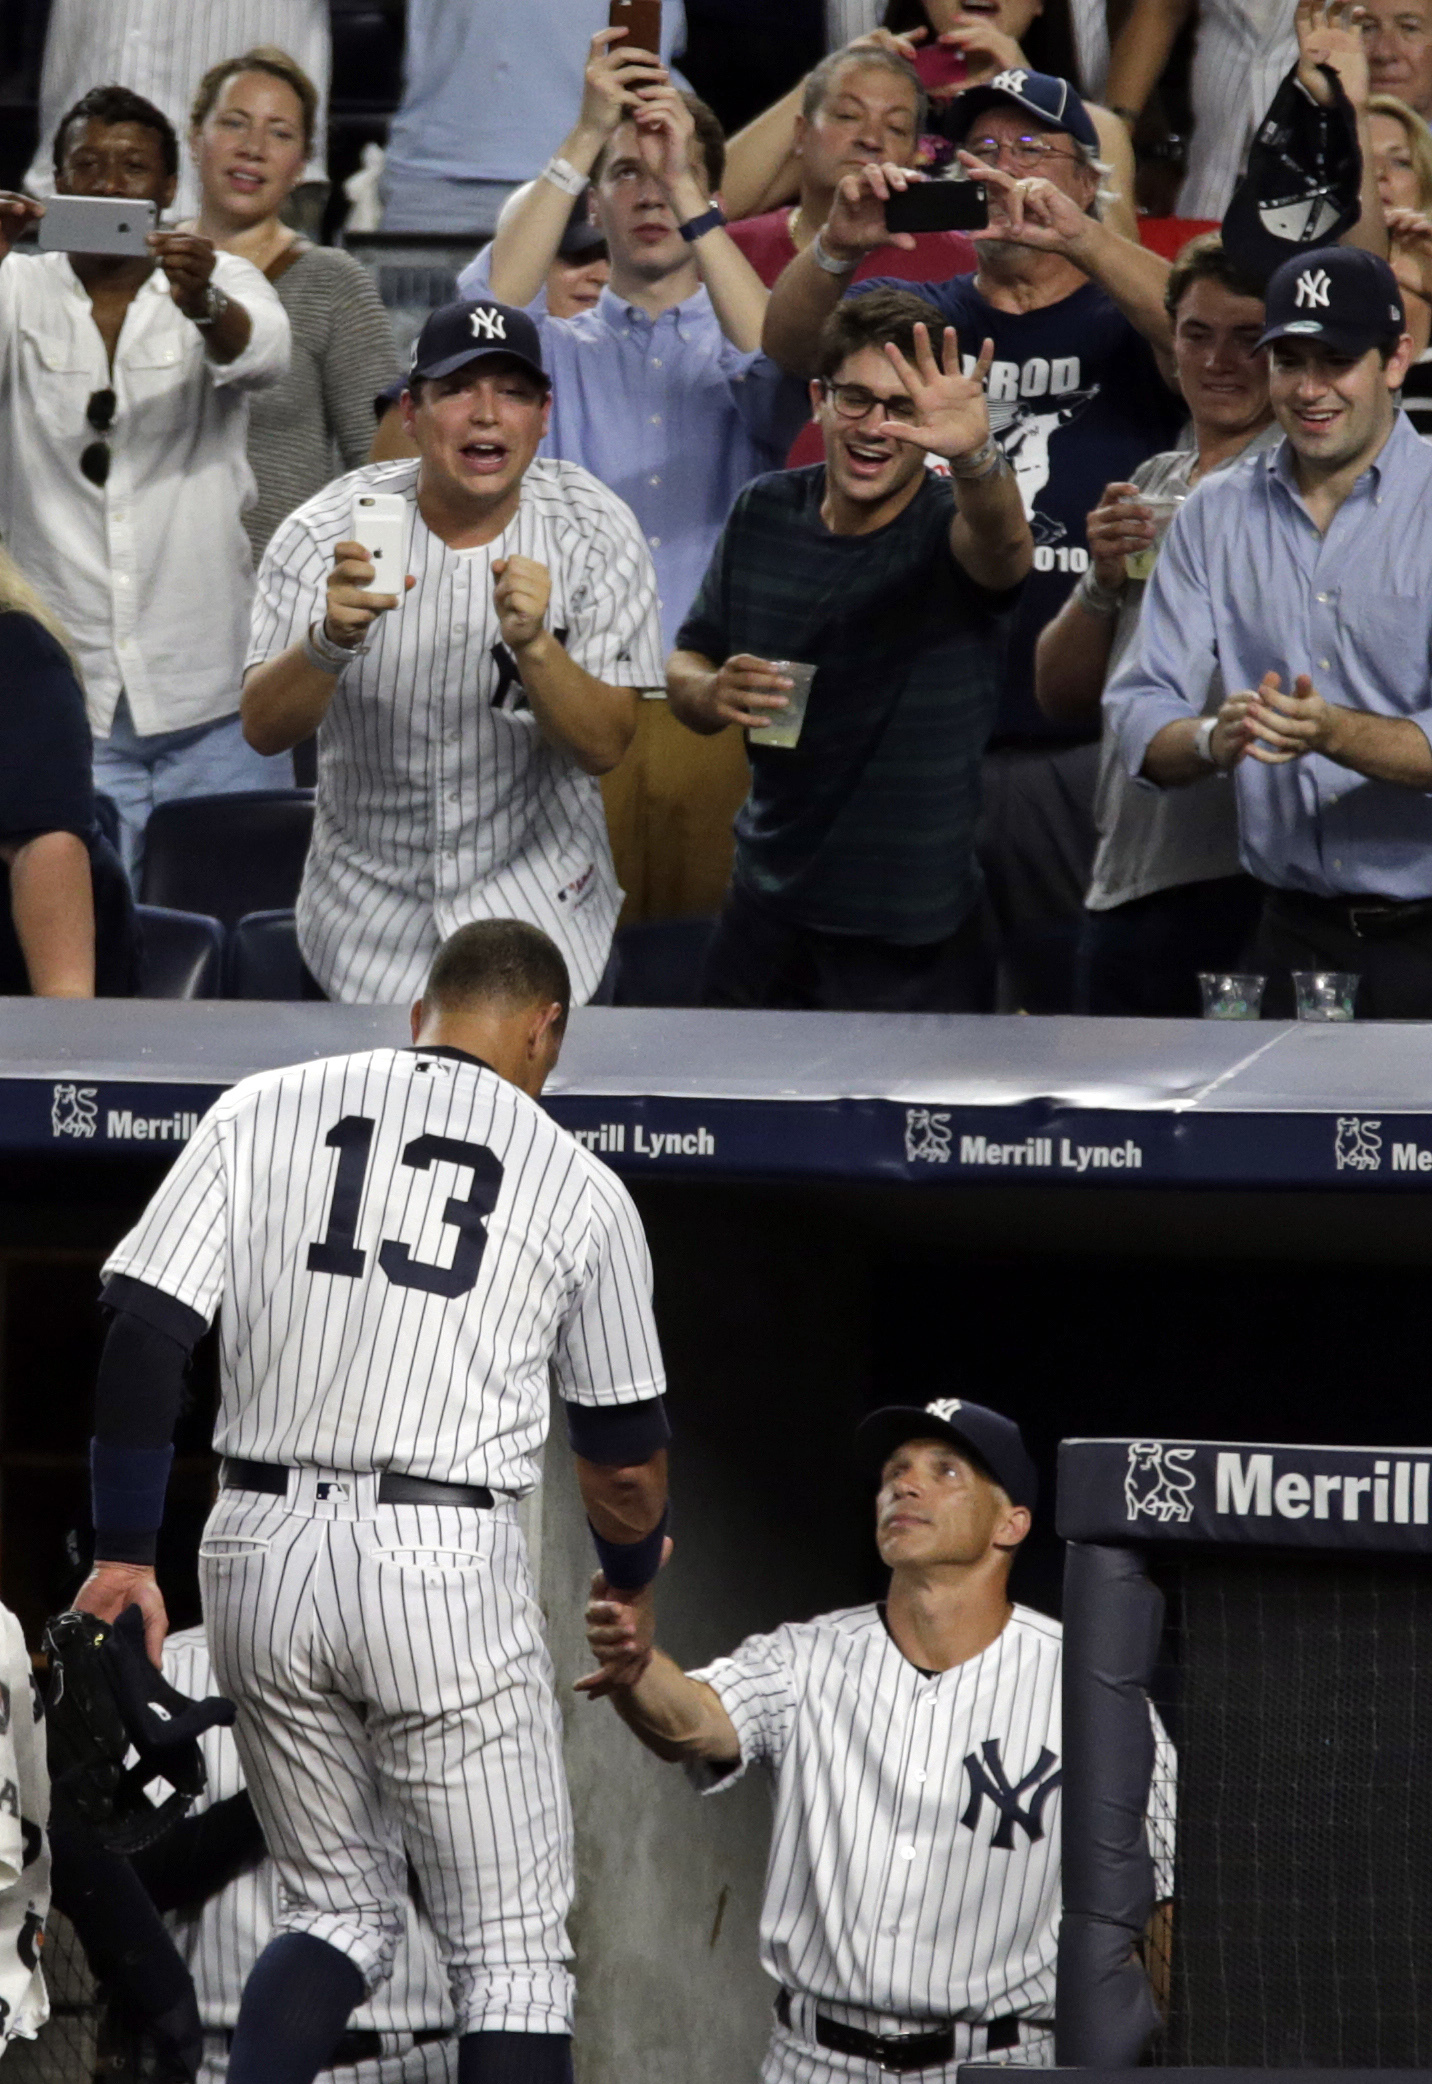 New York Yankees' Alex Rodriguez (13) shakes hands with manager Joe Girardi after being taken out of his final baseball game as a Yankee player, during the ninth inning against the Tampa Bay Rays on Friday, Aug. 12, 2016, in New York.The Yankees won 6-3.